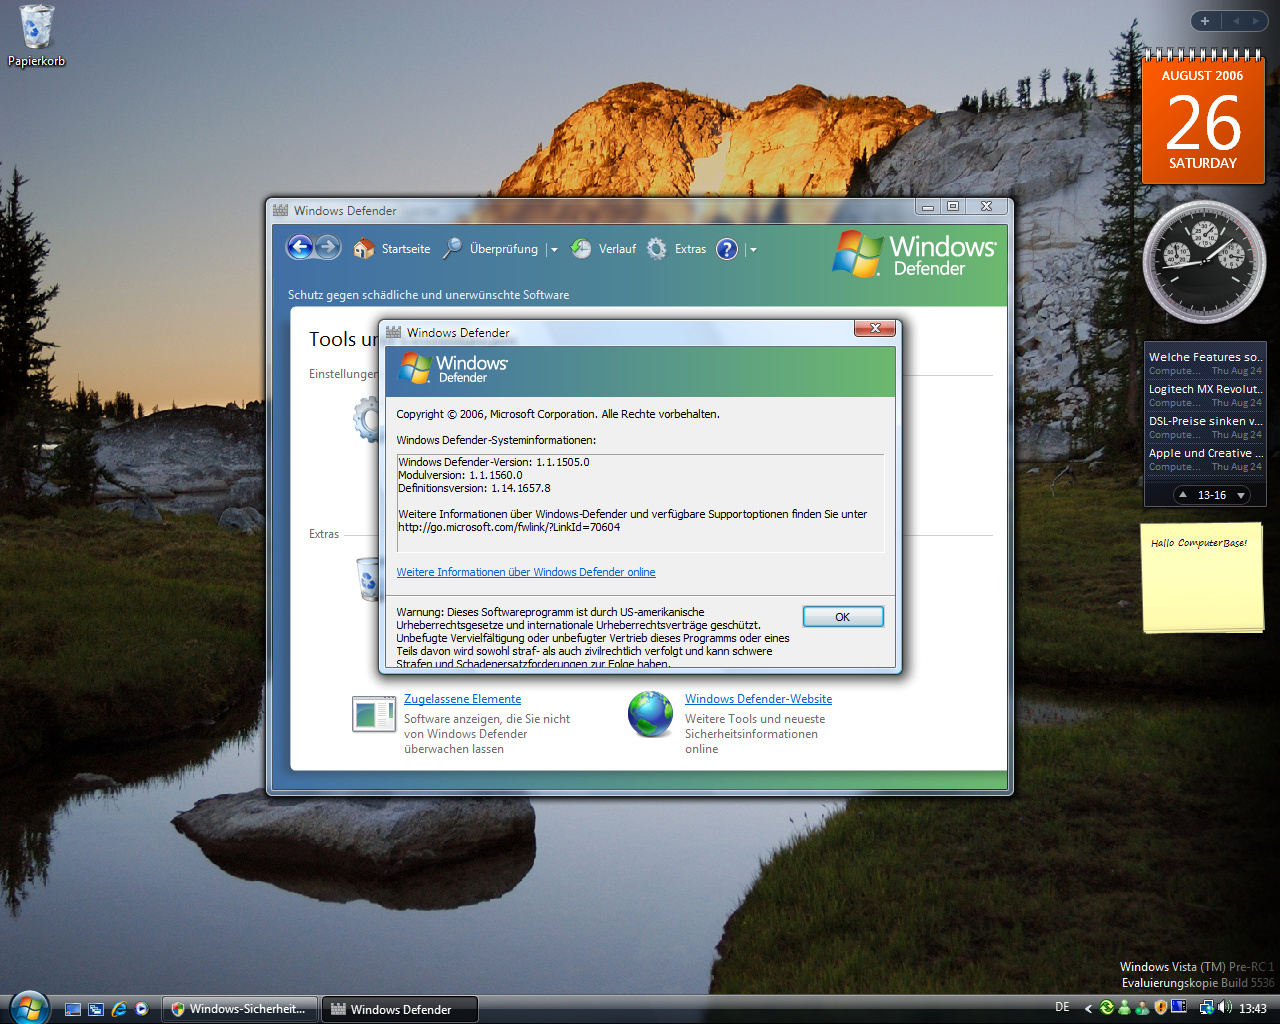 Windows Vista Build 5536 - Defender Versionsnummer